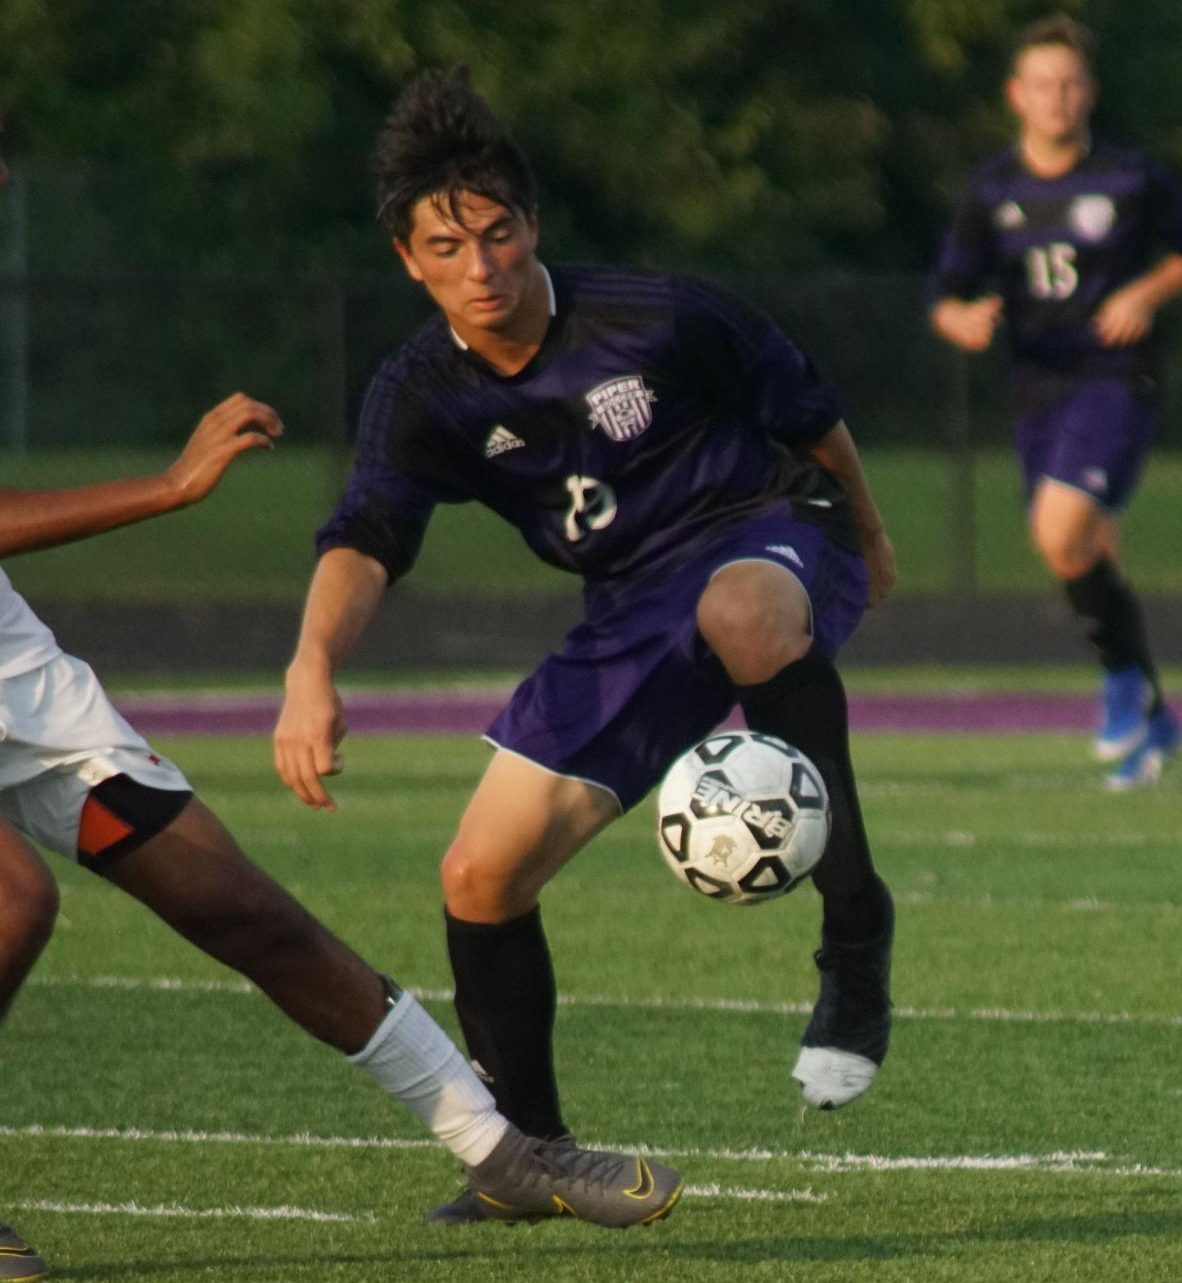 Junior Kyron Fergus dribbles through defenders against Shawnee Mission North on September 3. The Pirates went on to lose the game.